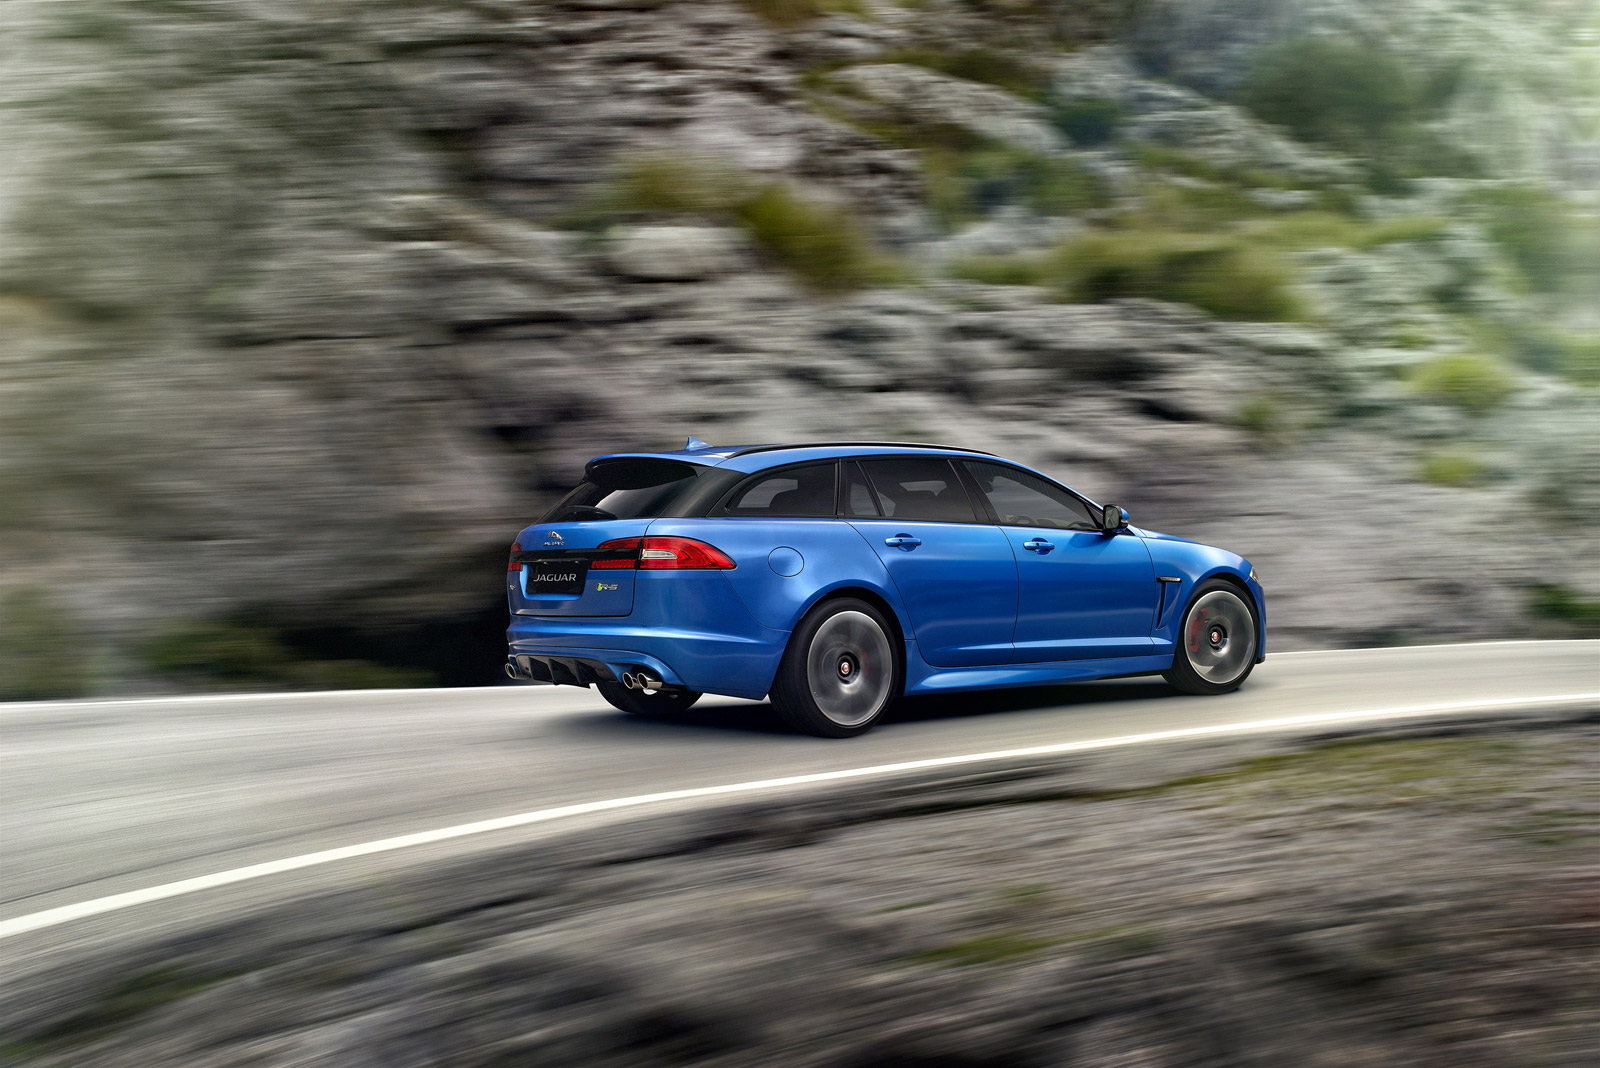 2014 Jaguar Xfr S Sportbrake Revealed Ahead Of Geneva